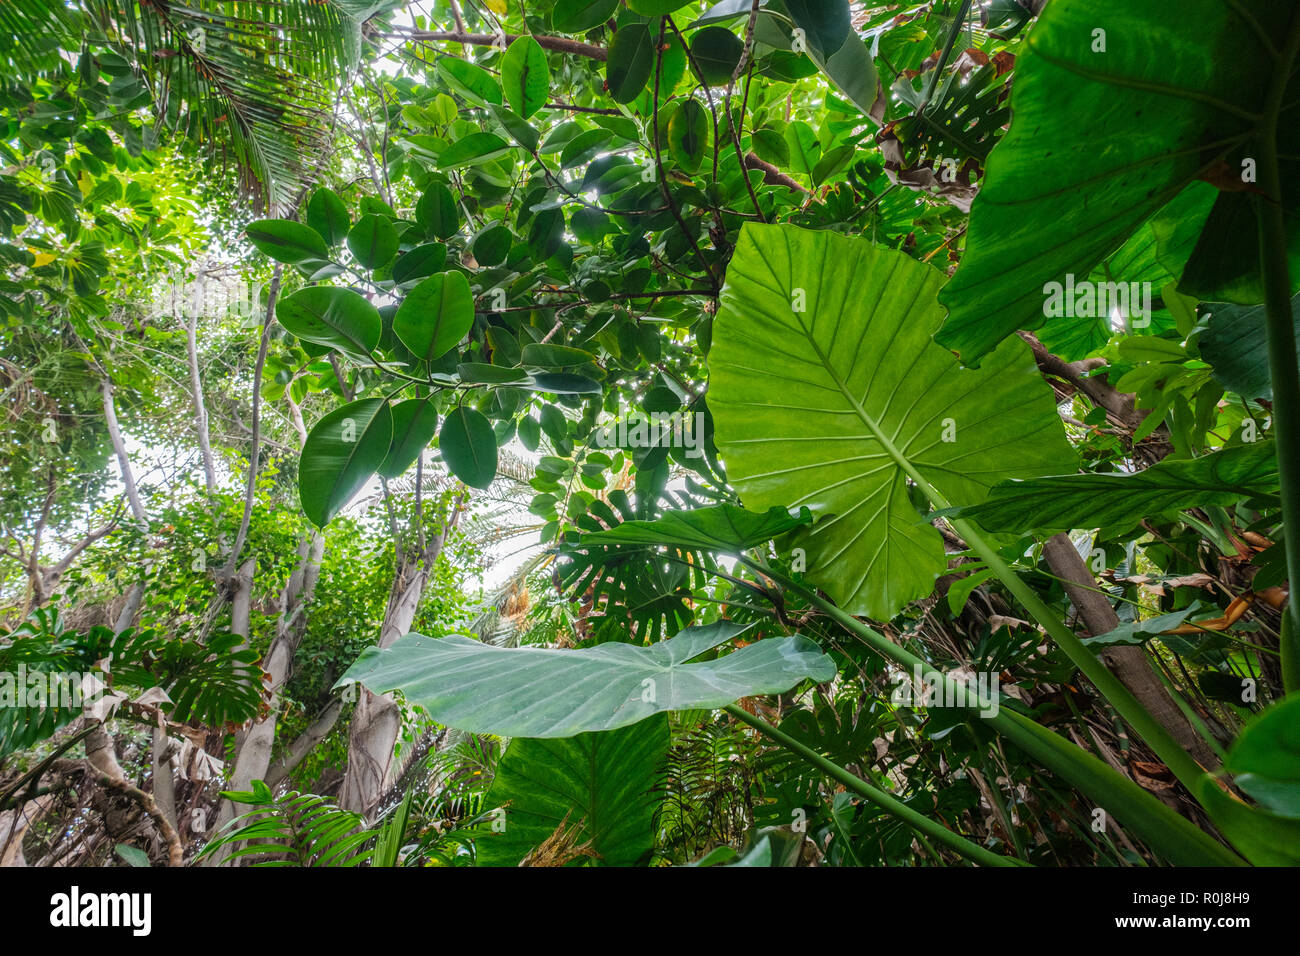 Tropical Plants In Forest Or Jungle / Rainforest Landscape